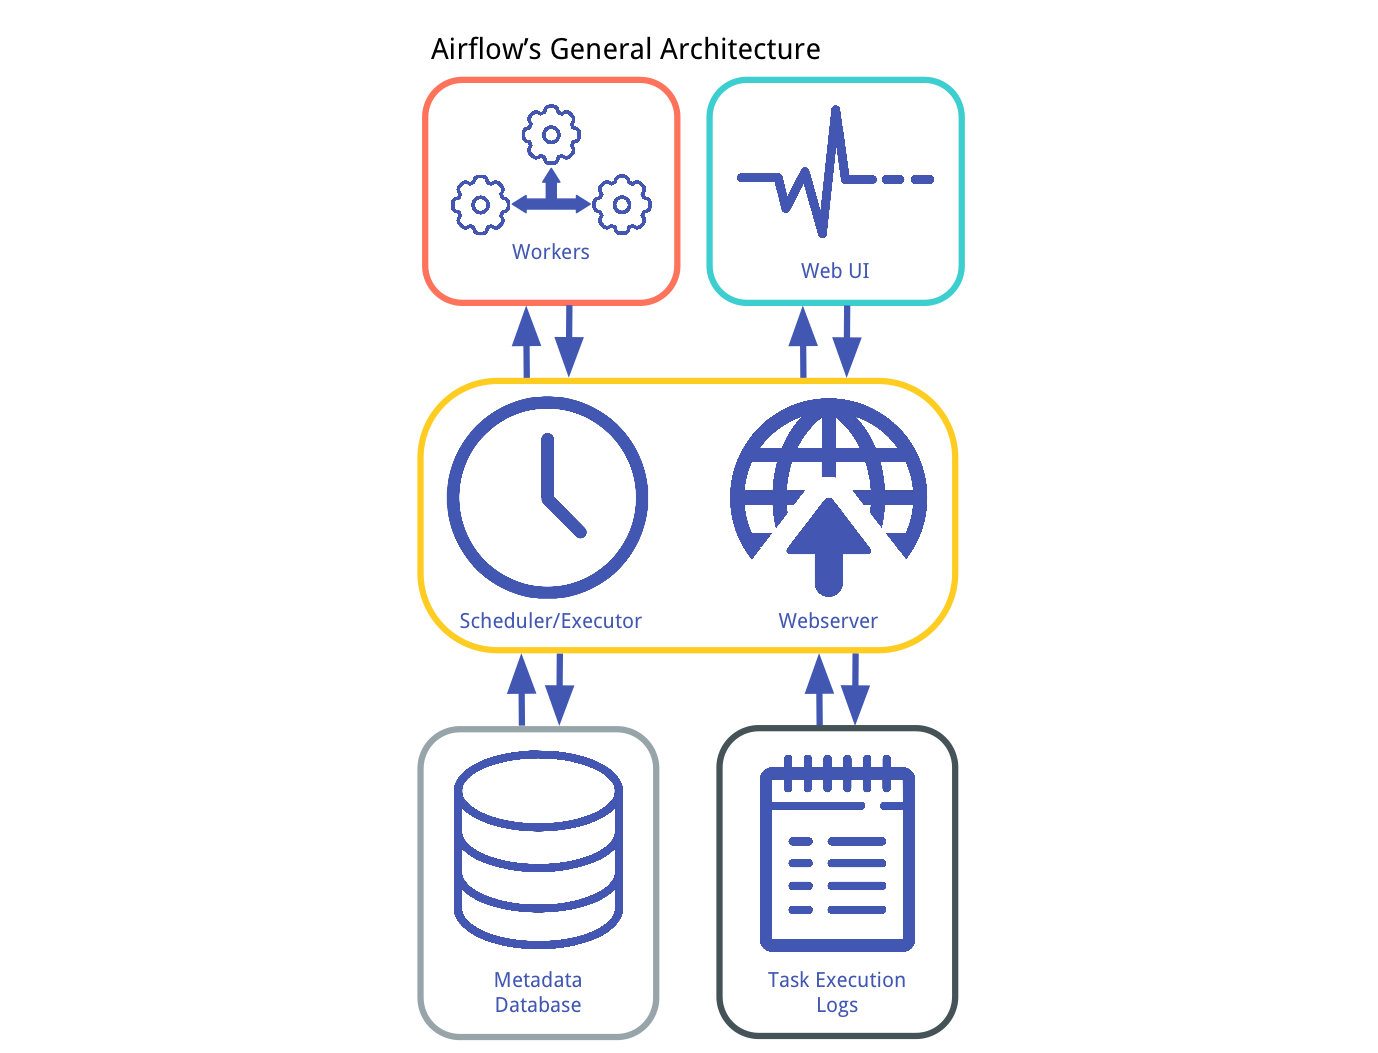 Understanding Apache Airflows Key Concepts Dustin Stansbury Medium How To Draw A State Machine Diagram Operation Is Built Atop Metadata Database Which Stores The Of Tasks And Workflows Ie Dags Scheduler Executor Send